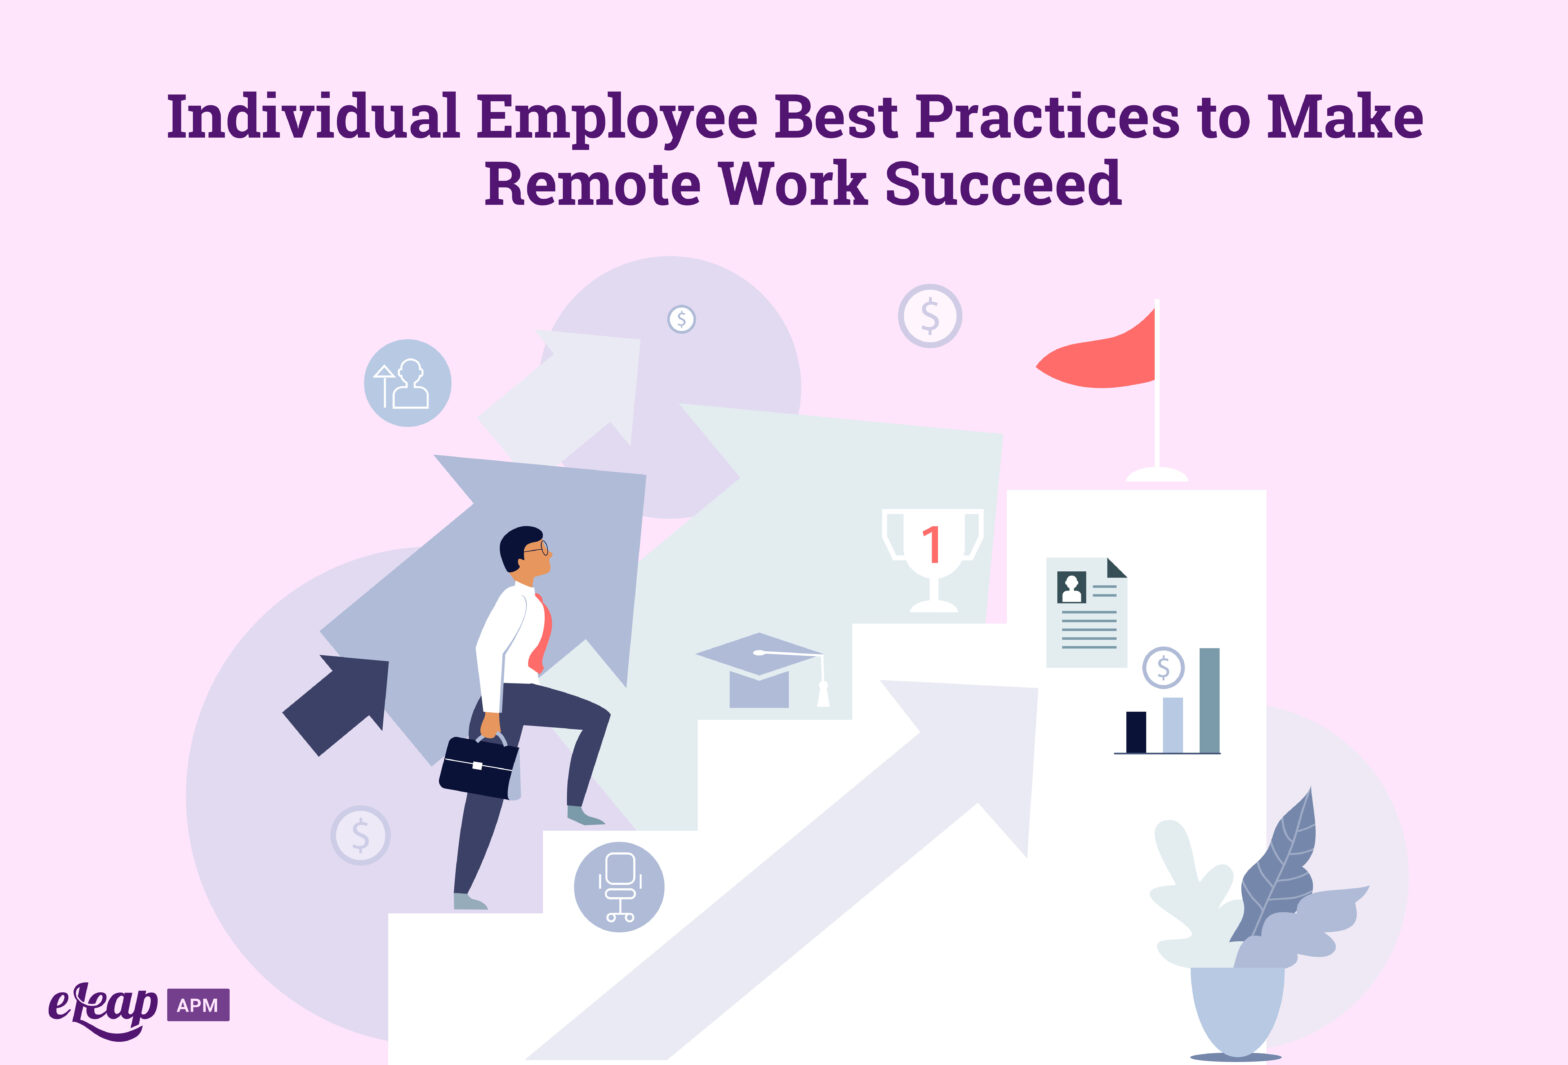 Individual Employee Best Practices to Make Remote Work Succeed